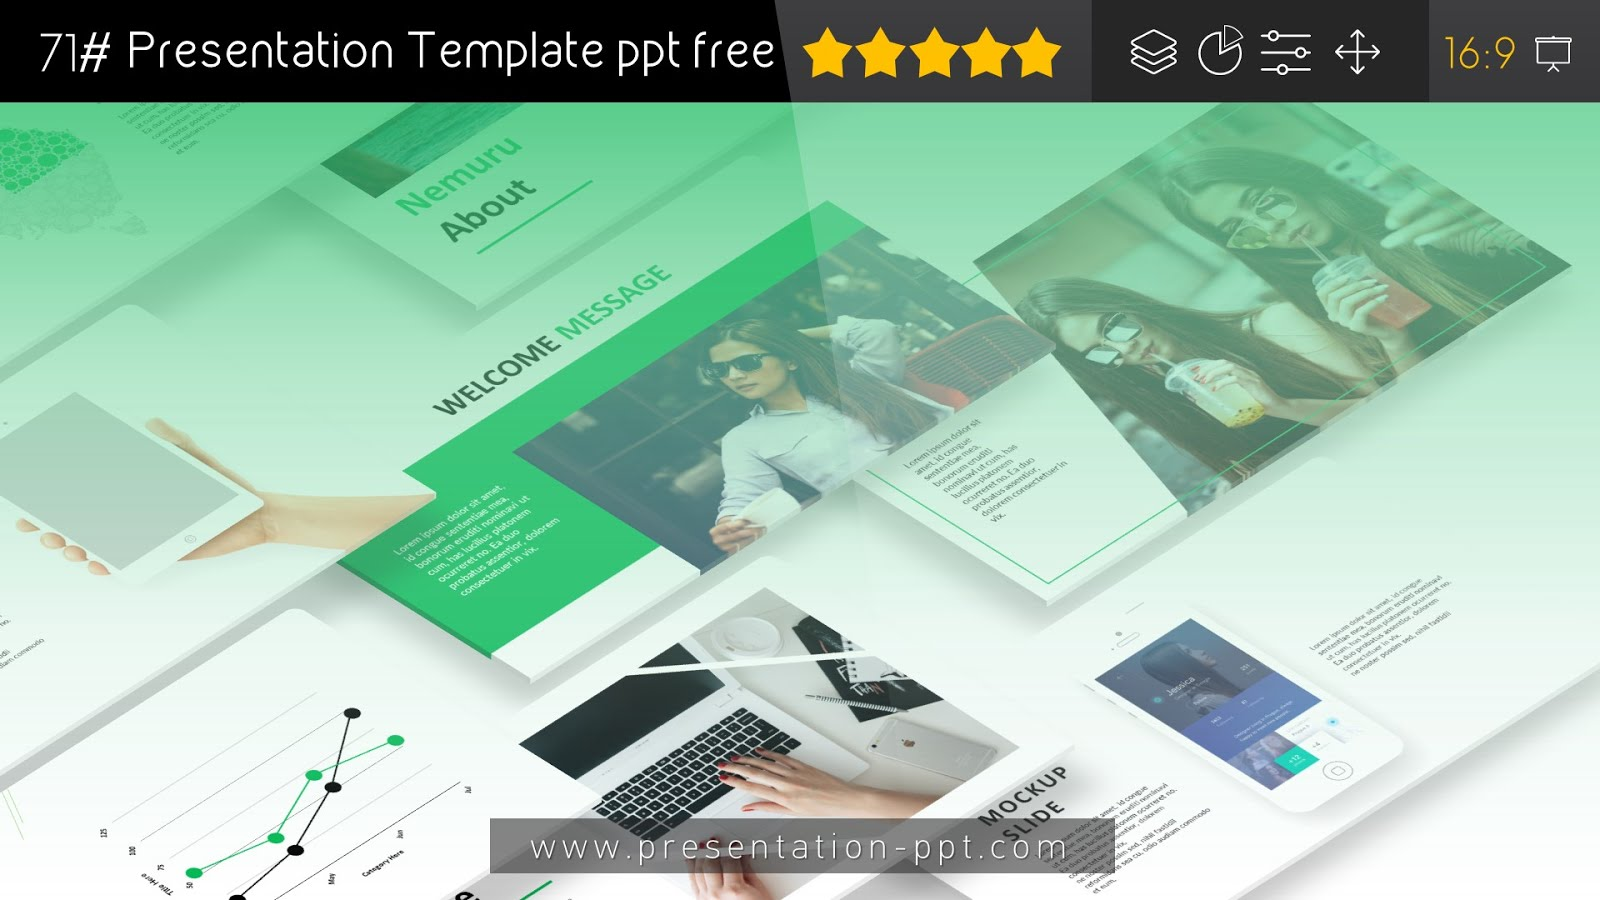 Presentation Template powerpoint free